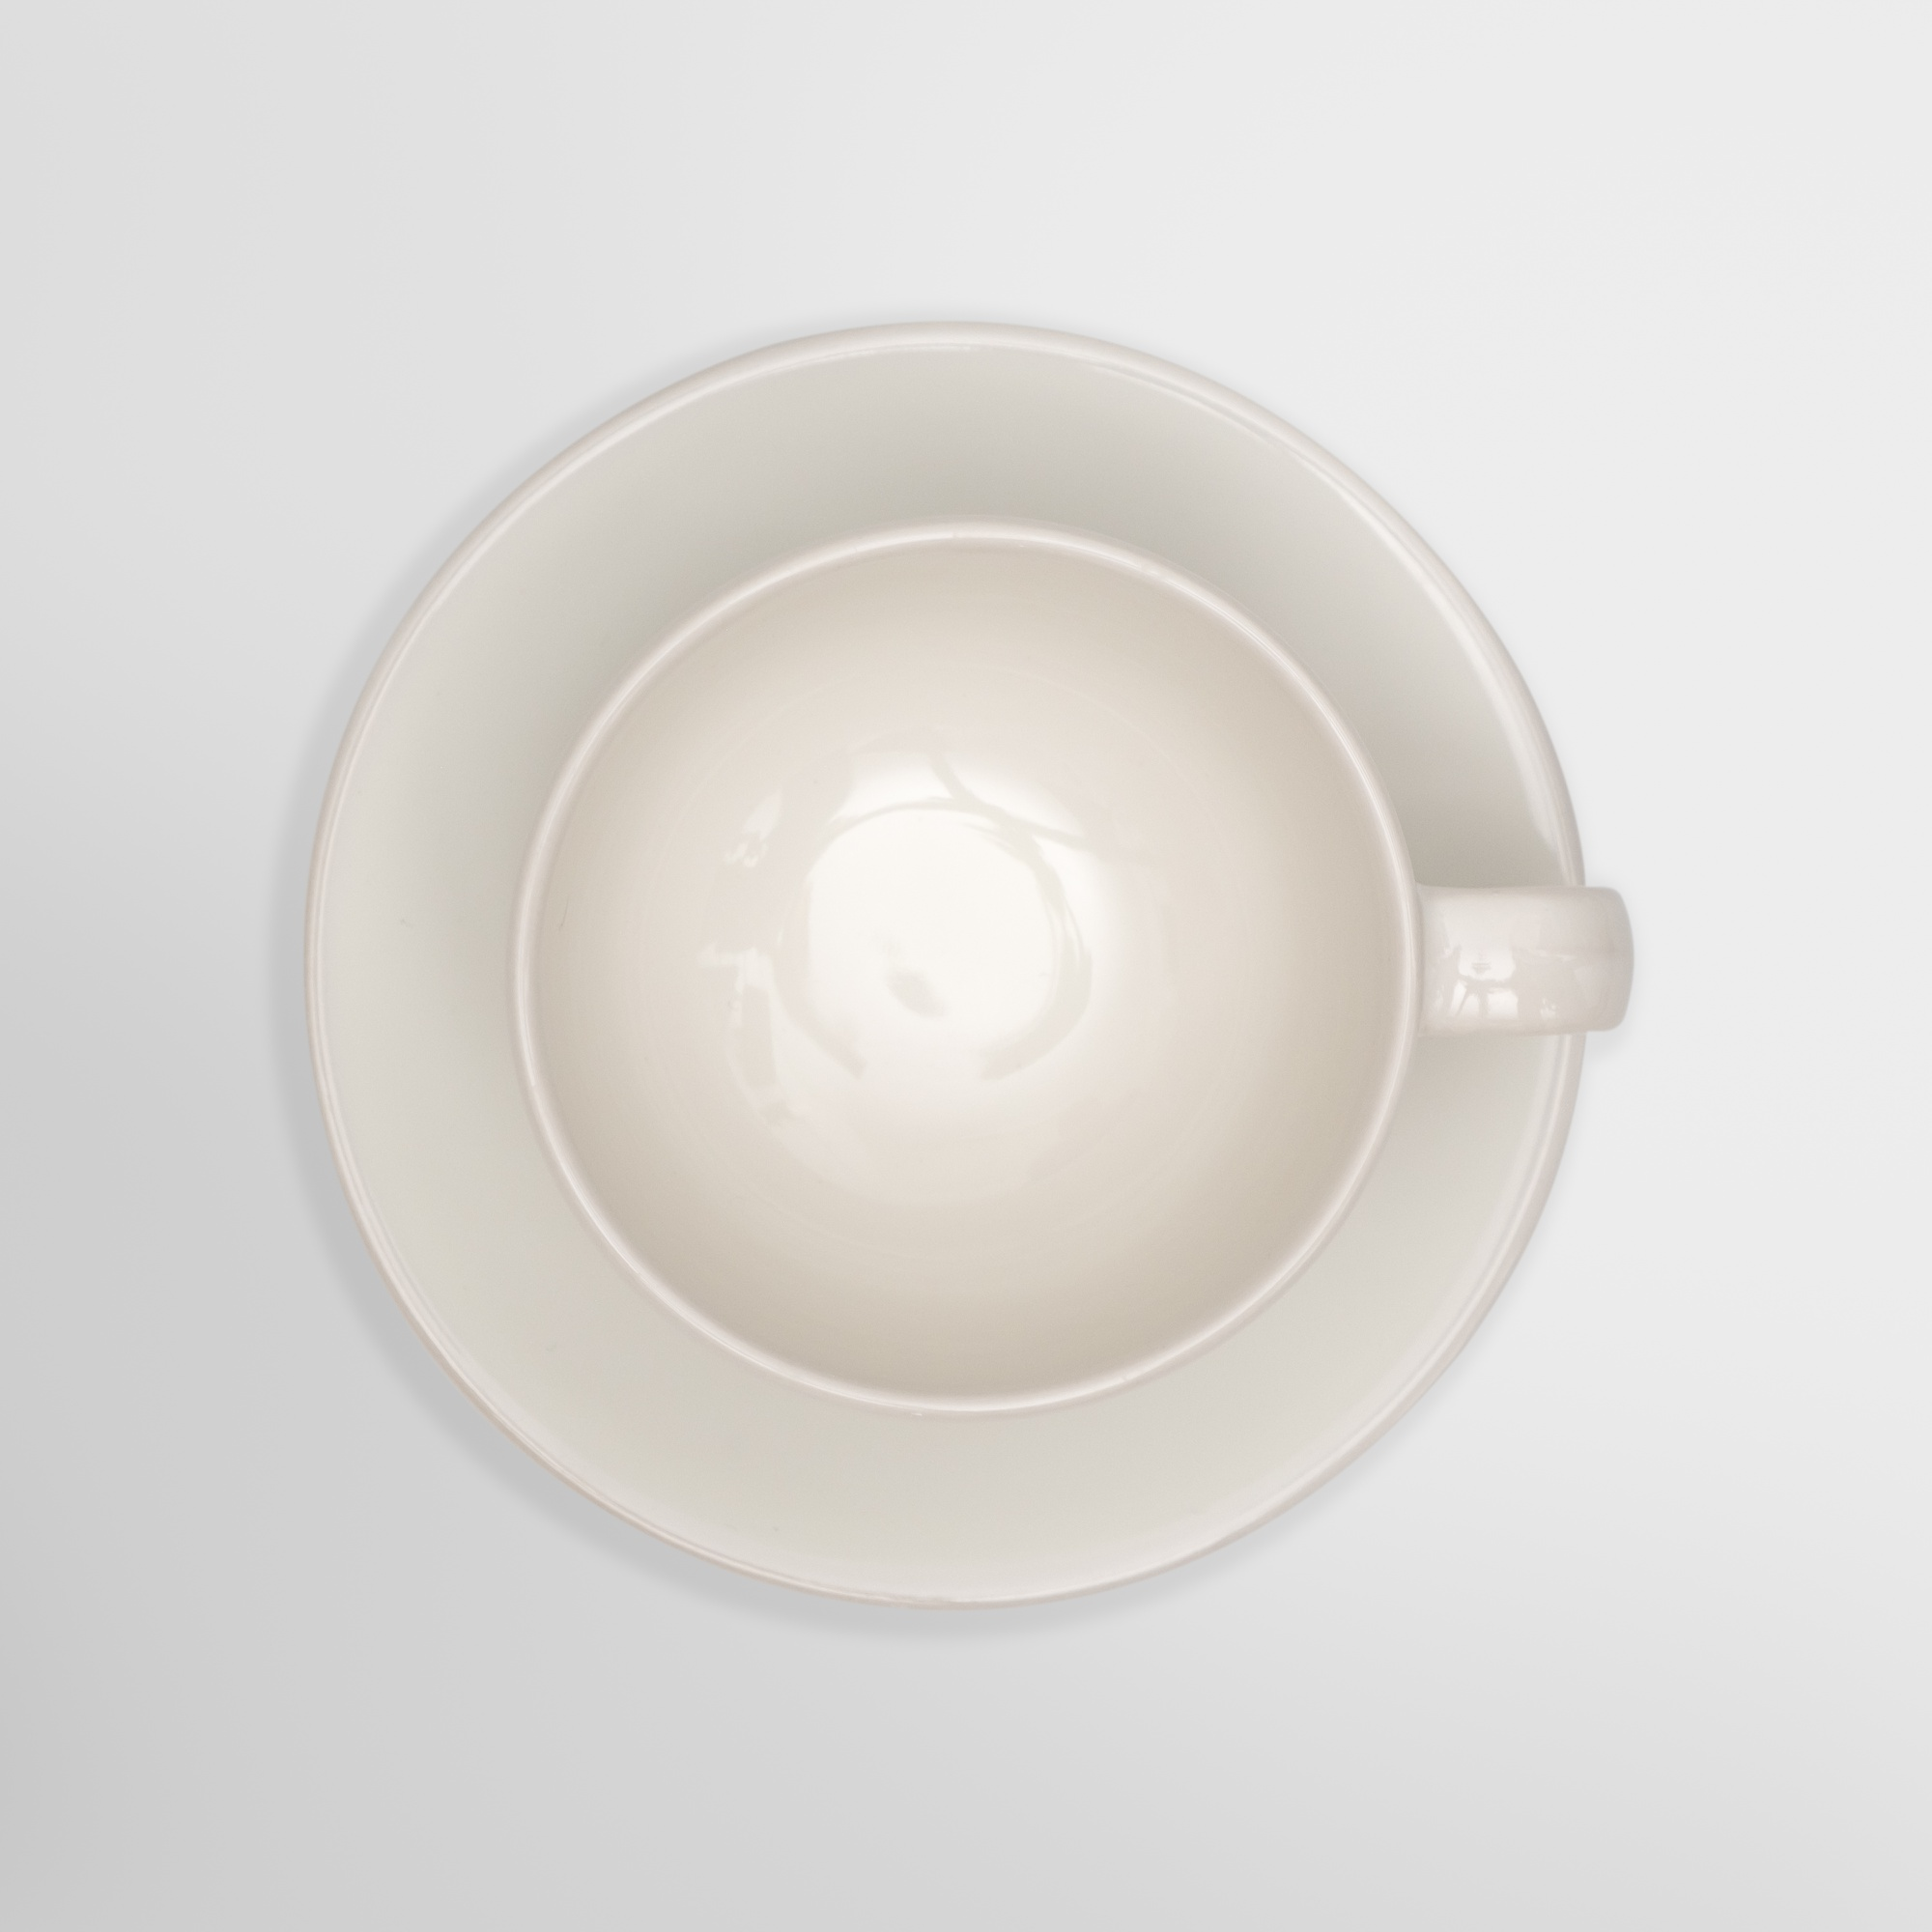 Top view-close up of a white cup on white background